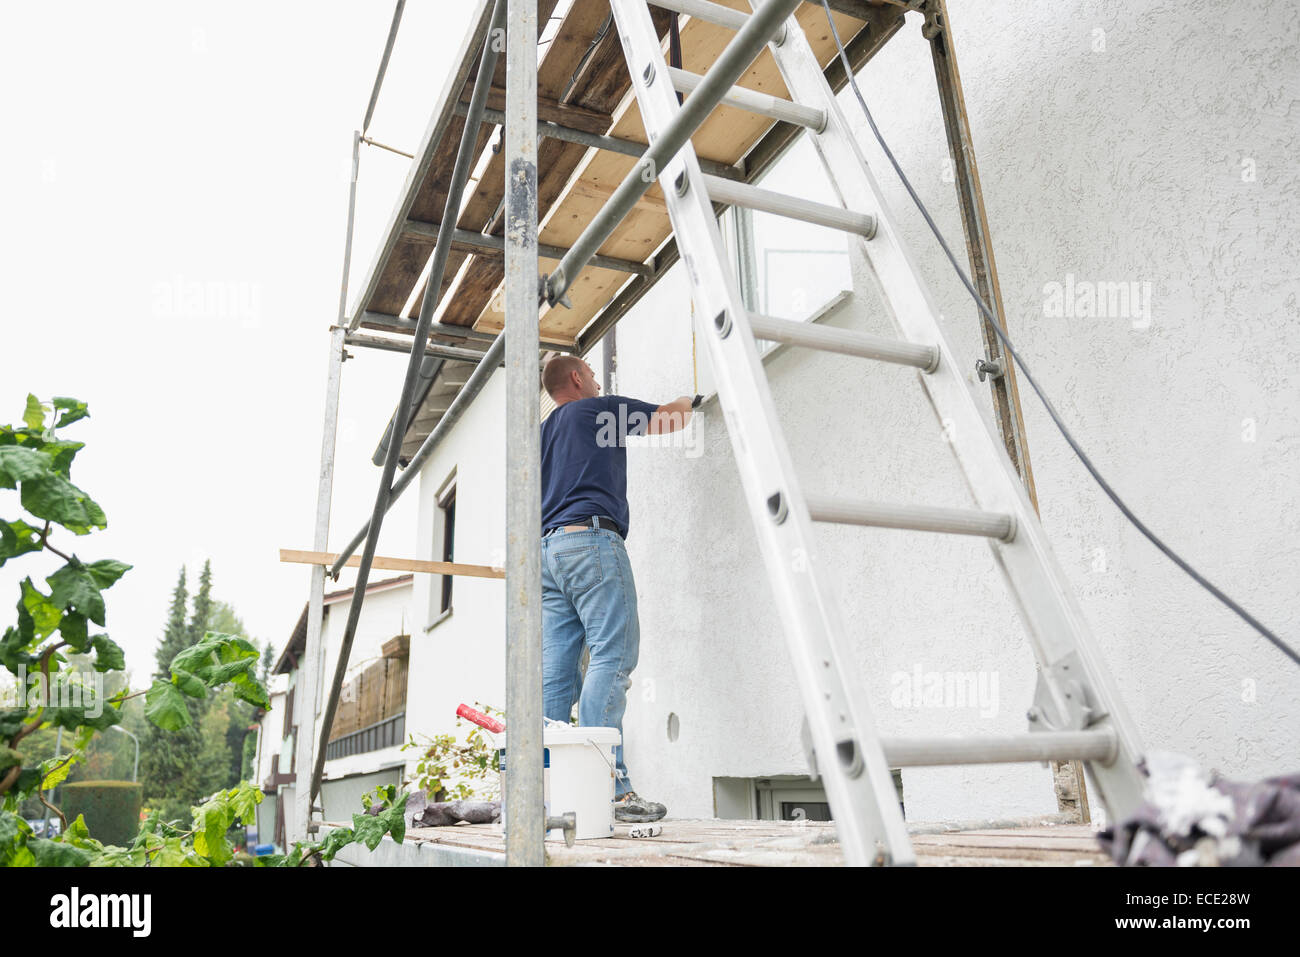 Man House Scaffolding Painting Ladder Working Stock Photo